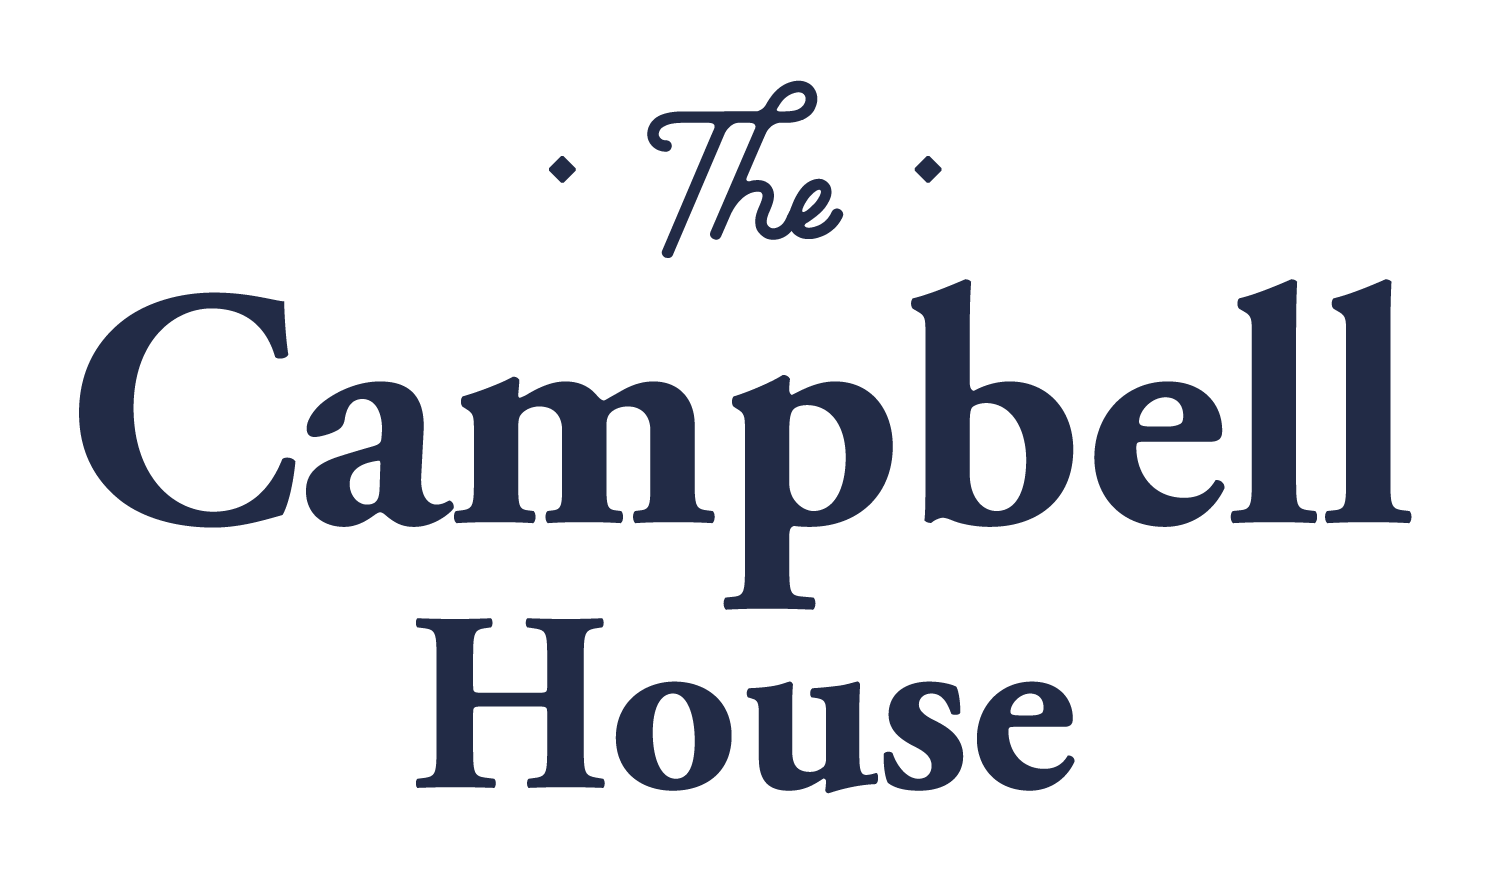 The Campbell House